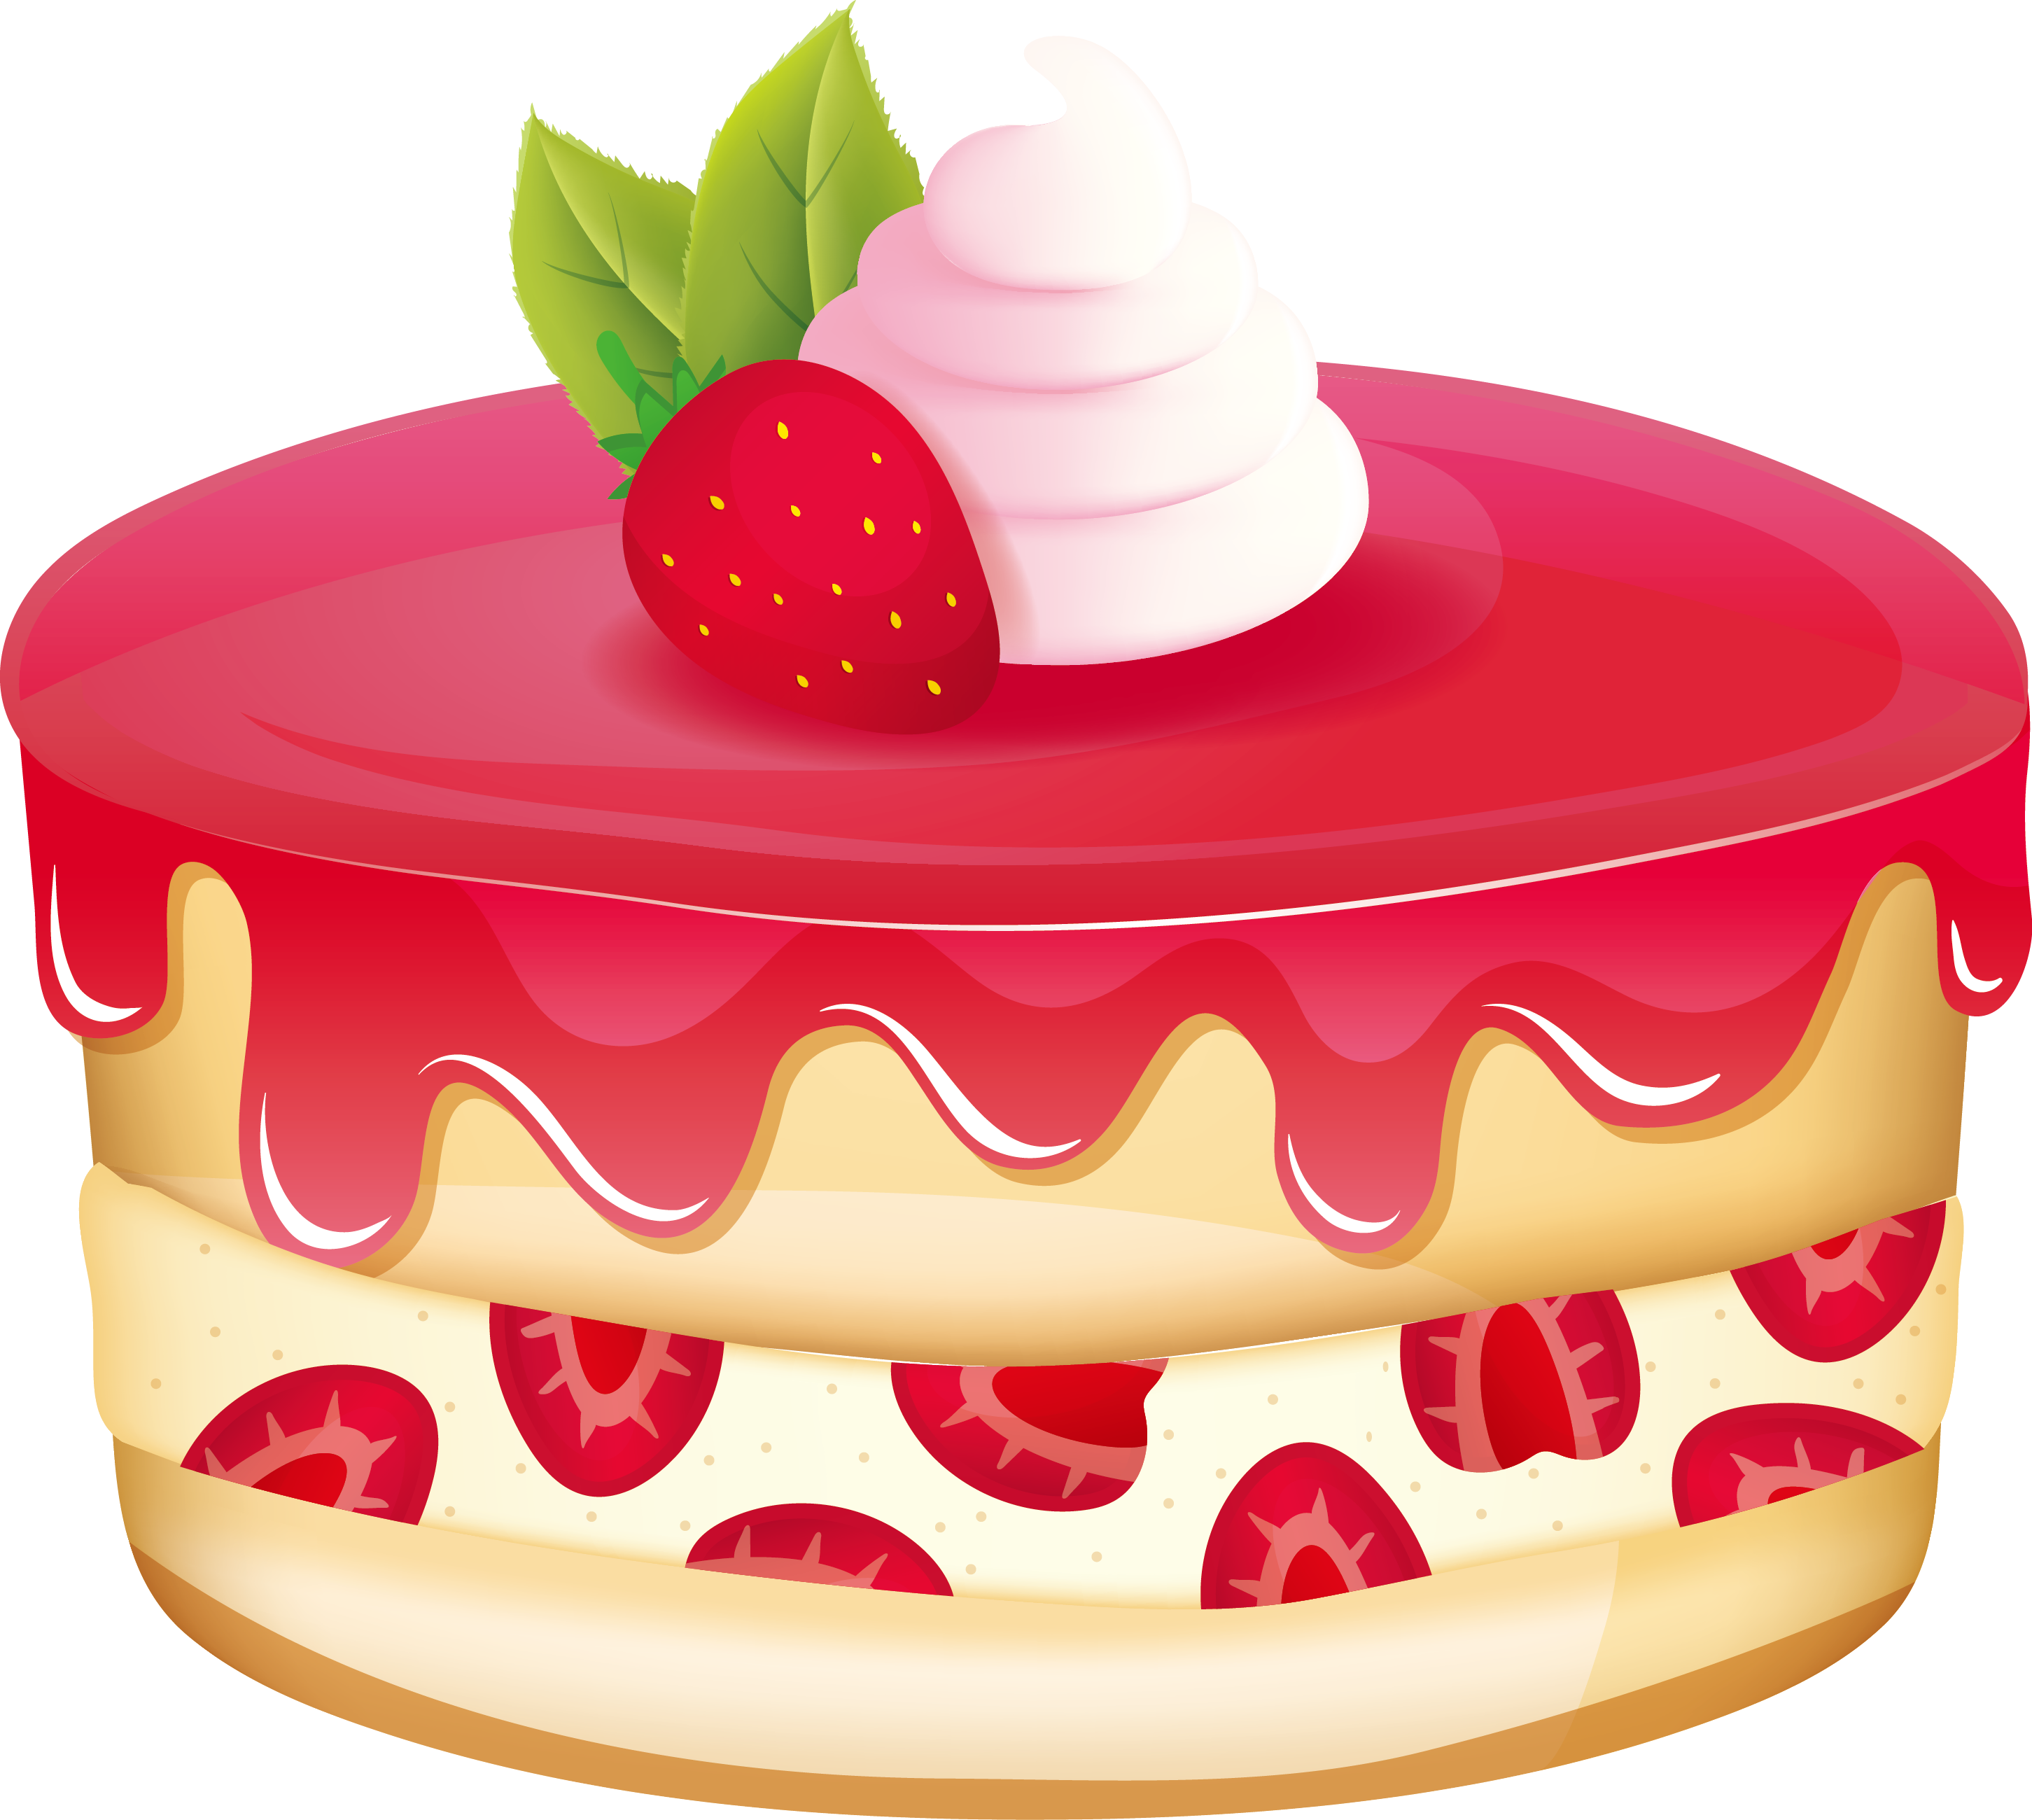 Strawberry shortcake bxe nh. Dessert clipart coconut cake